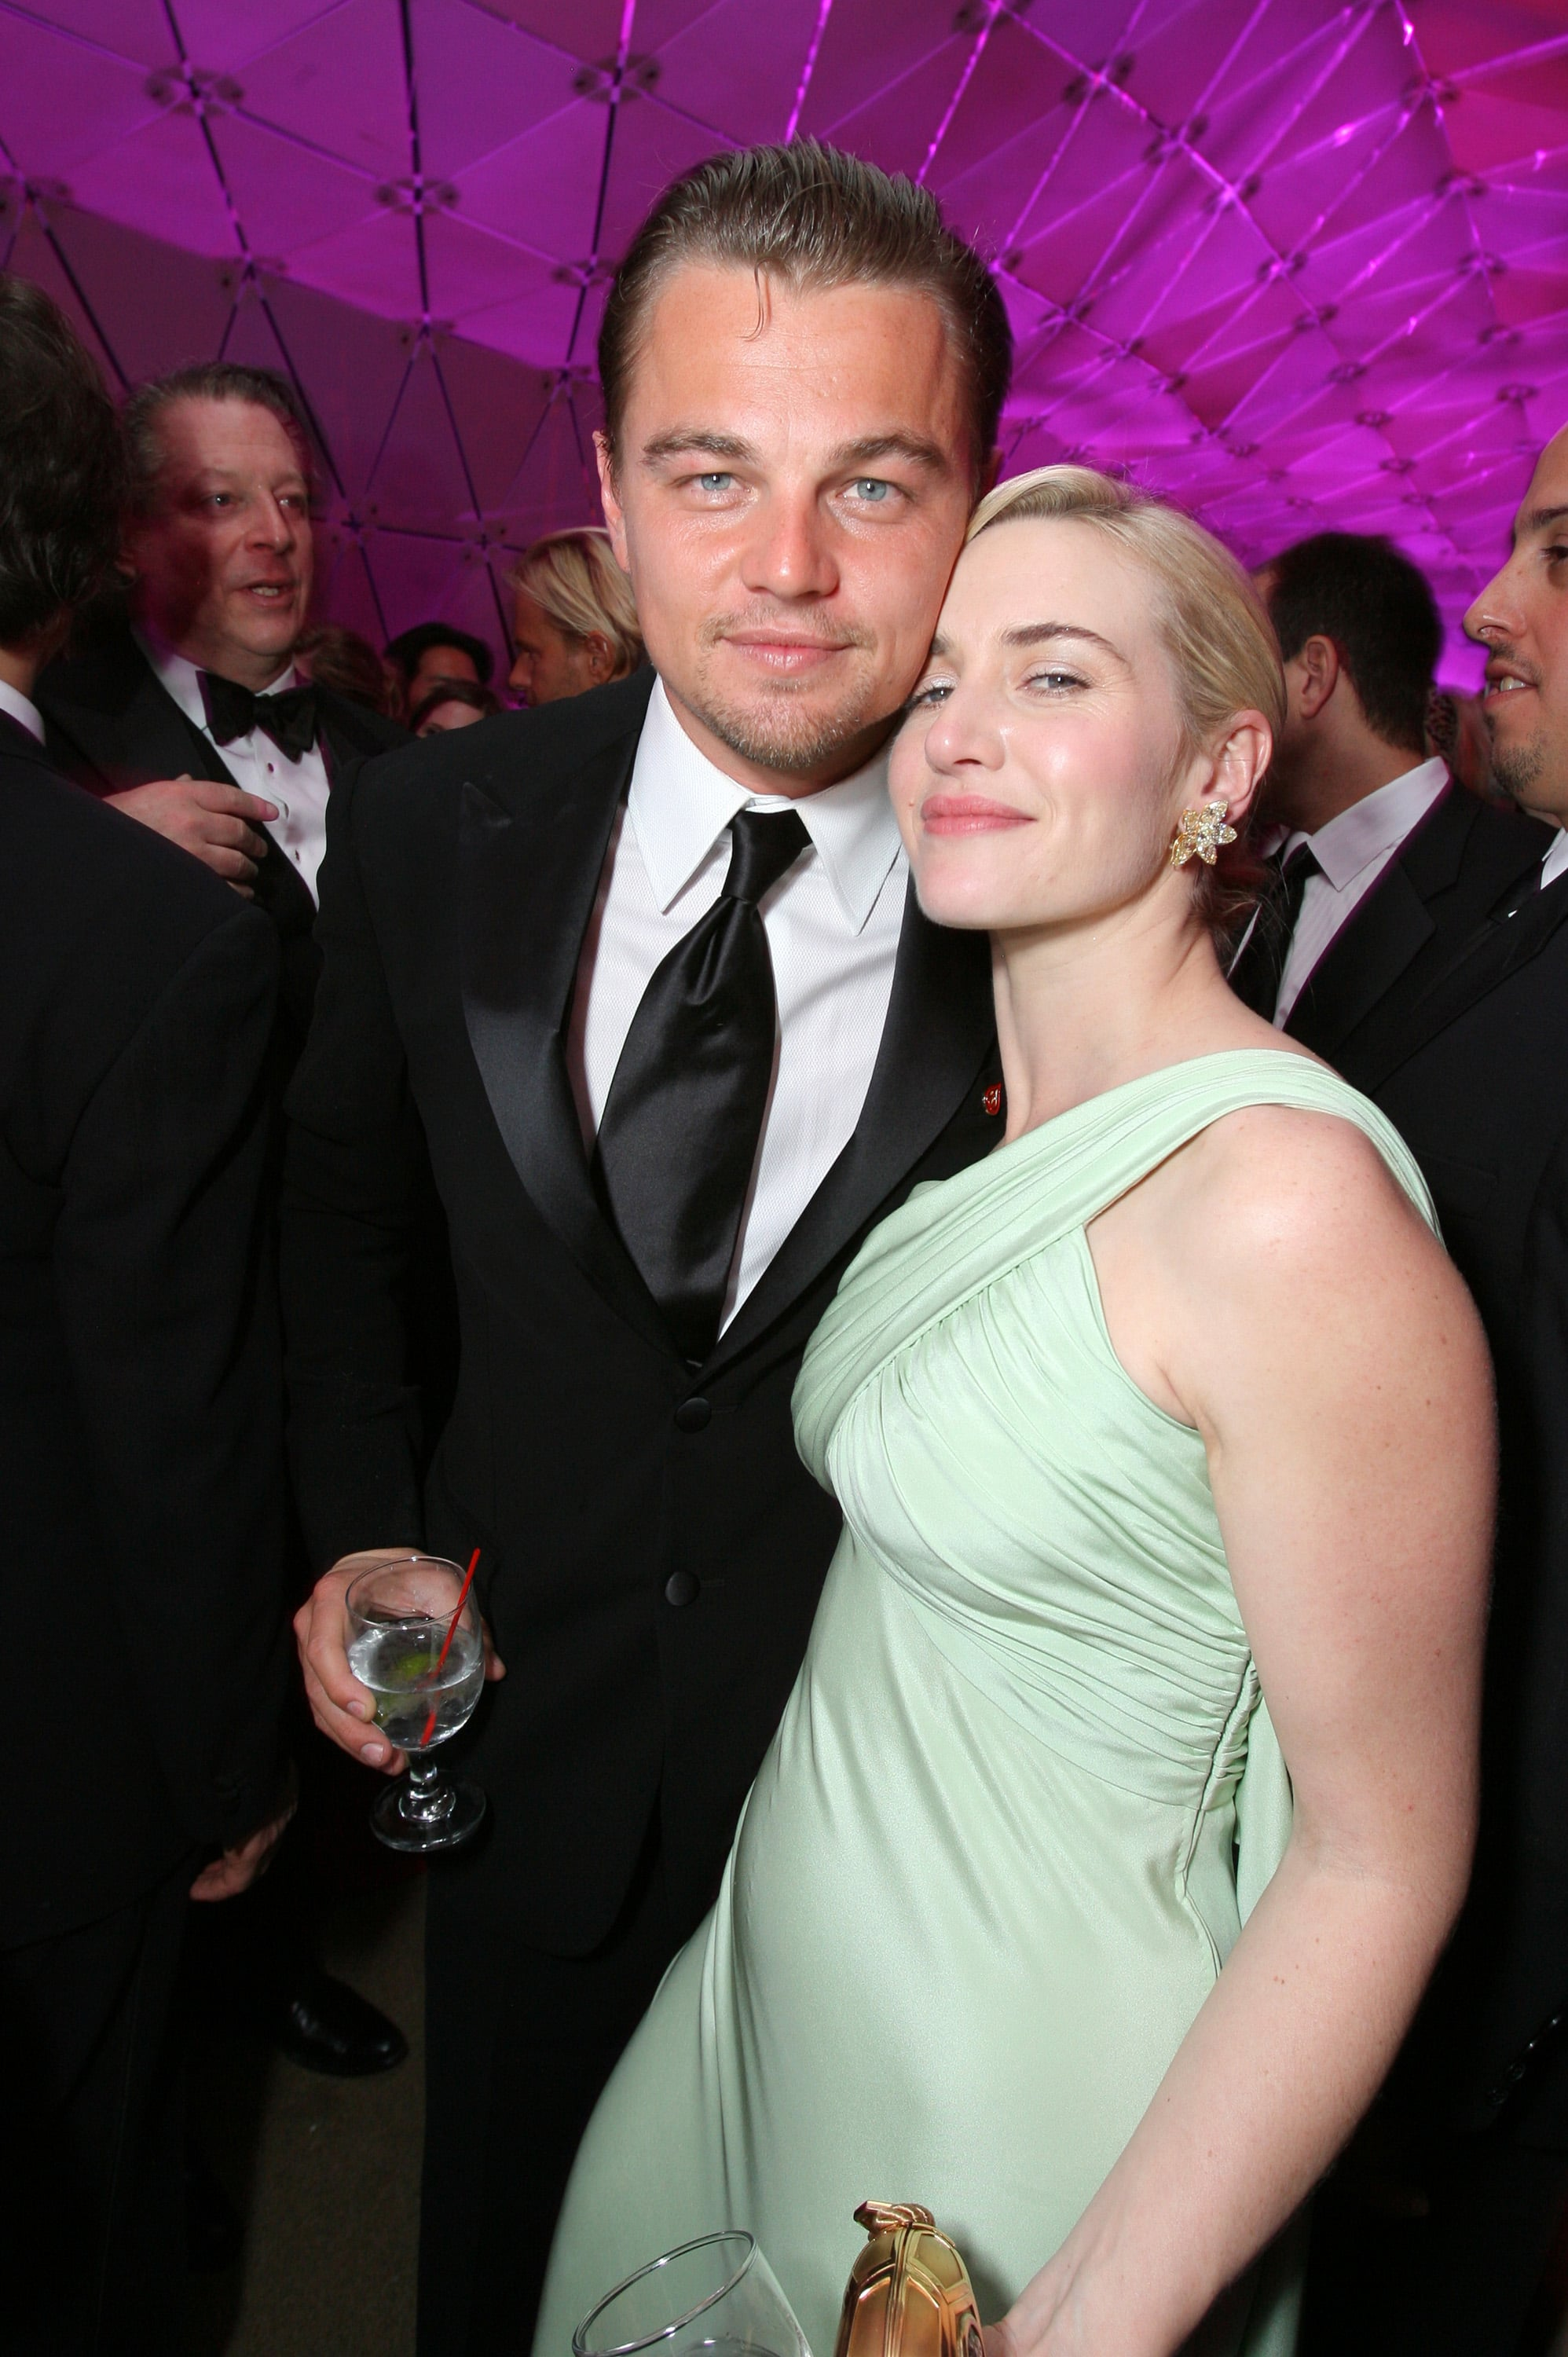 """They met up multiple times throughout the season and wrapped up the excitement at Vanity Fair's annual Oscars party, where Kate helped Leo celebrate The Departed's best picture win.  Later that year — 10 years after their Titanic start — they got back together in front of the cameras to film 2008's Revolutionary Road. Kate shared that their background helped them during filming, especially since the director happened to be Kate's then-husband, Sam Mendes. Kate confirmed that Leo's and her """"relationship predates my relationship with Sam, and Sam always loved that,"""" which made working with both the men in her life even easier."""